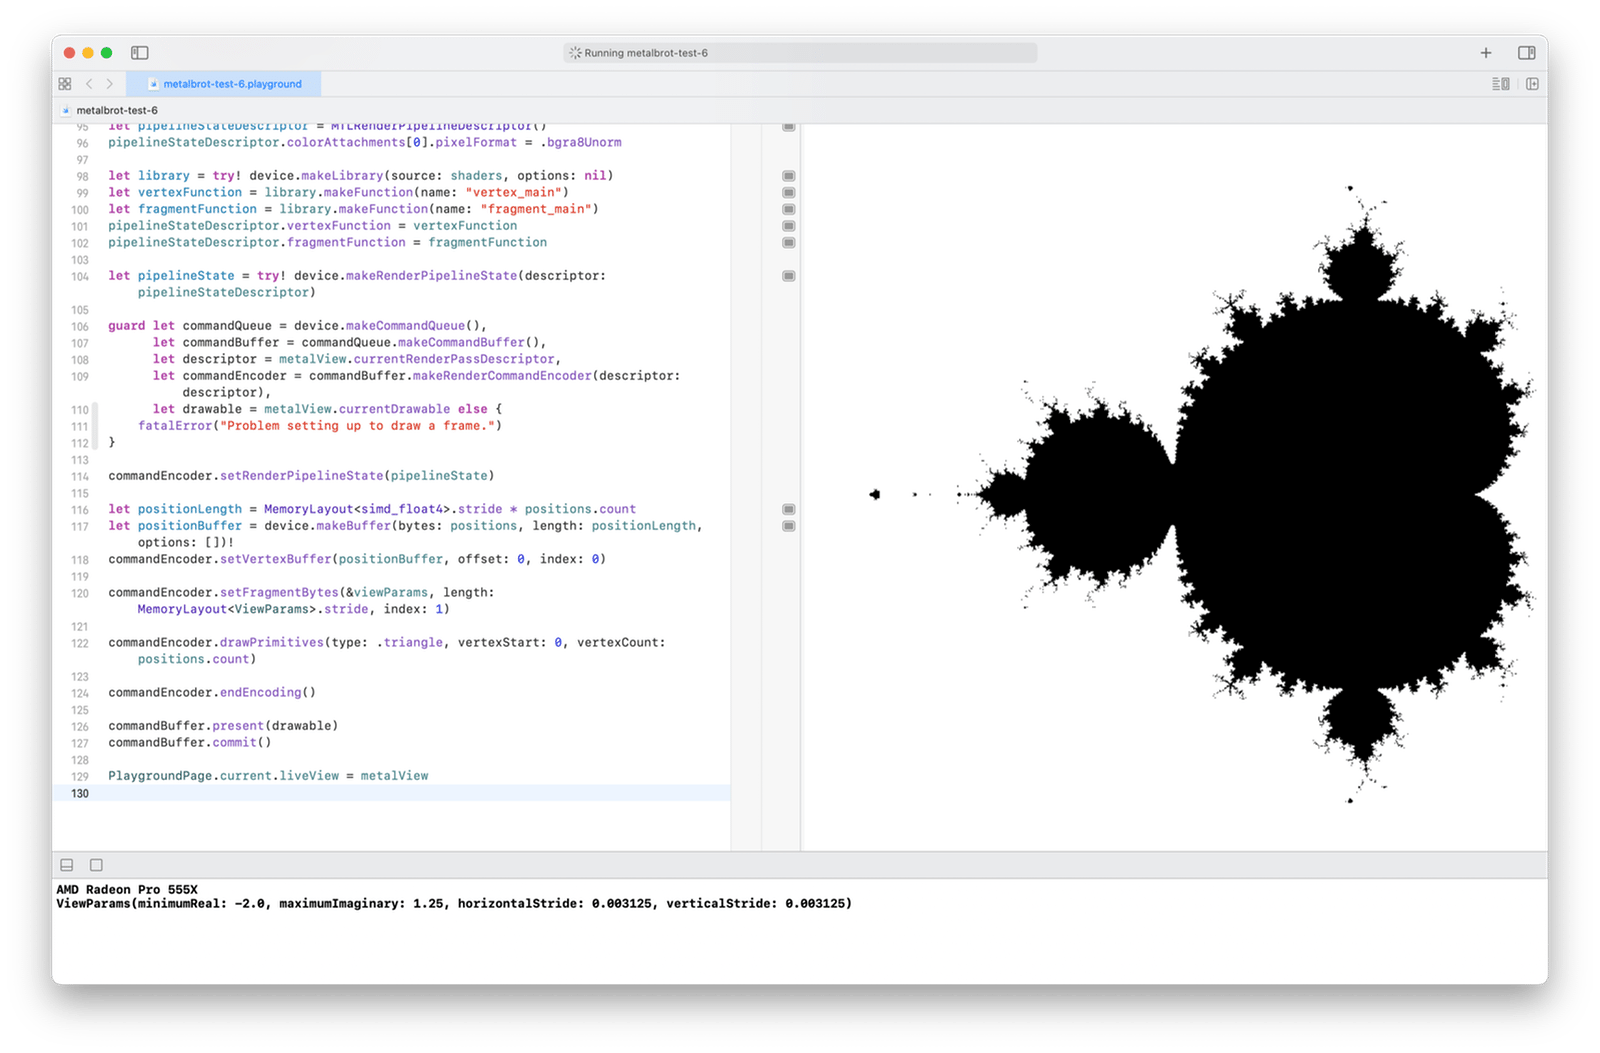 The Mandelbrot set rendered with 800 × 800 pixels, in black and white